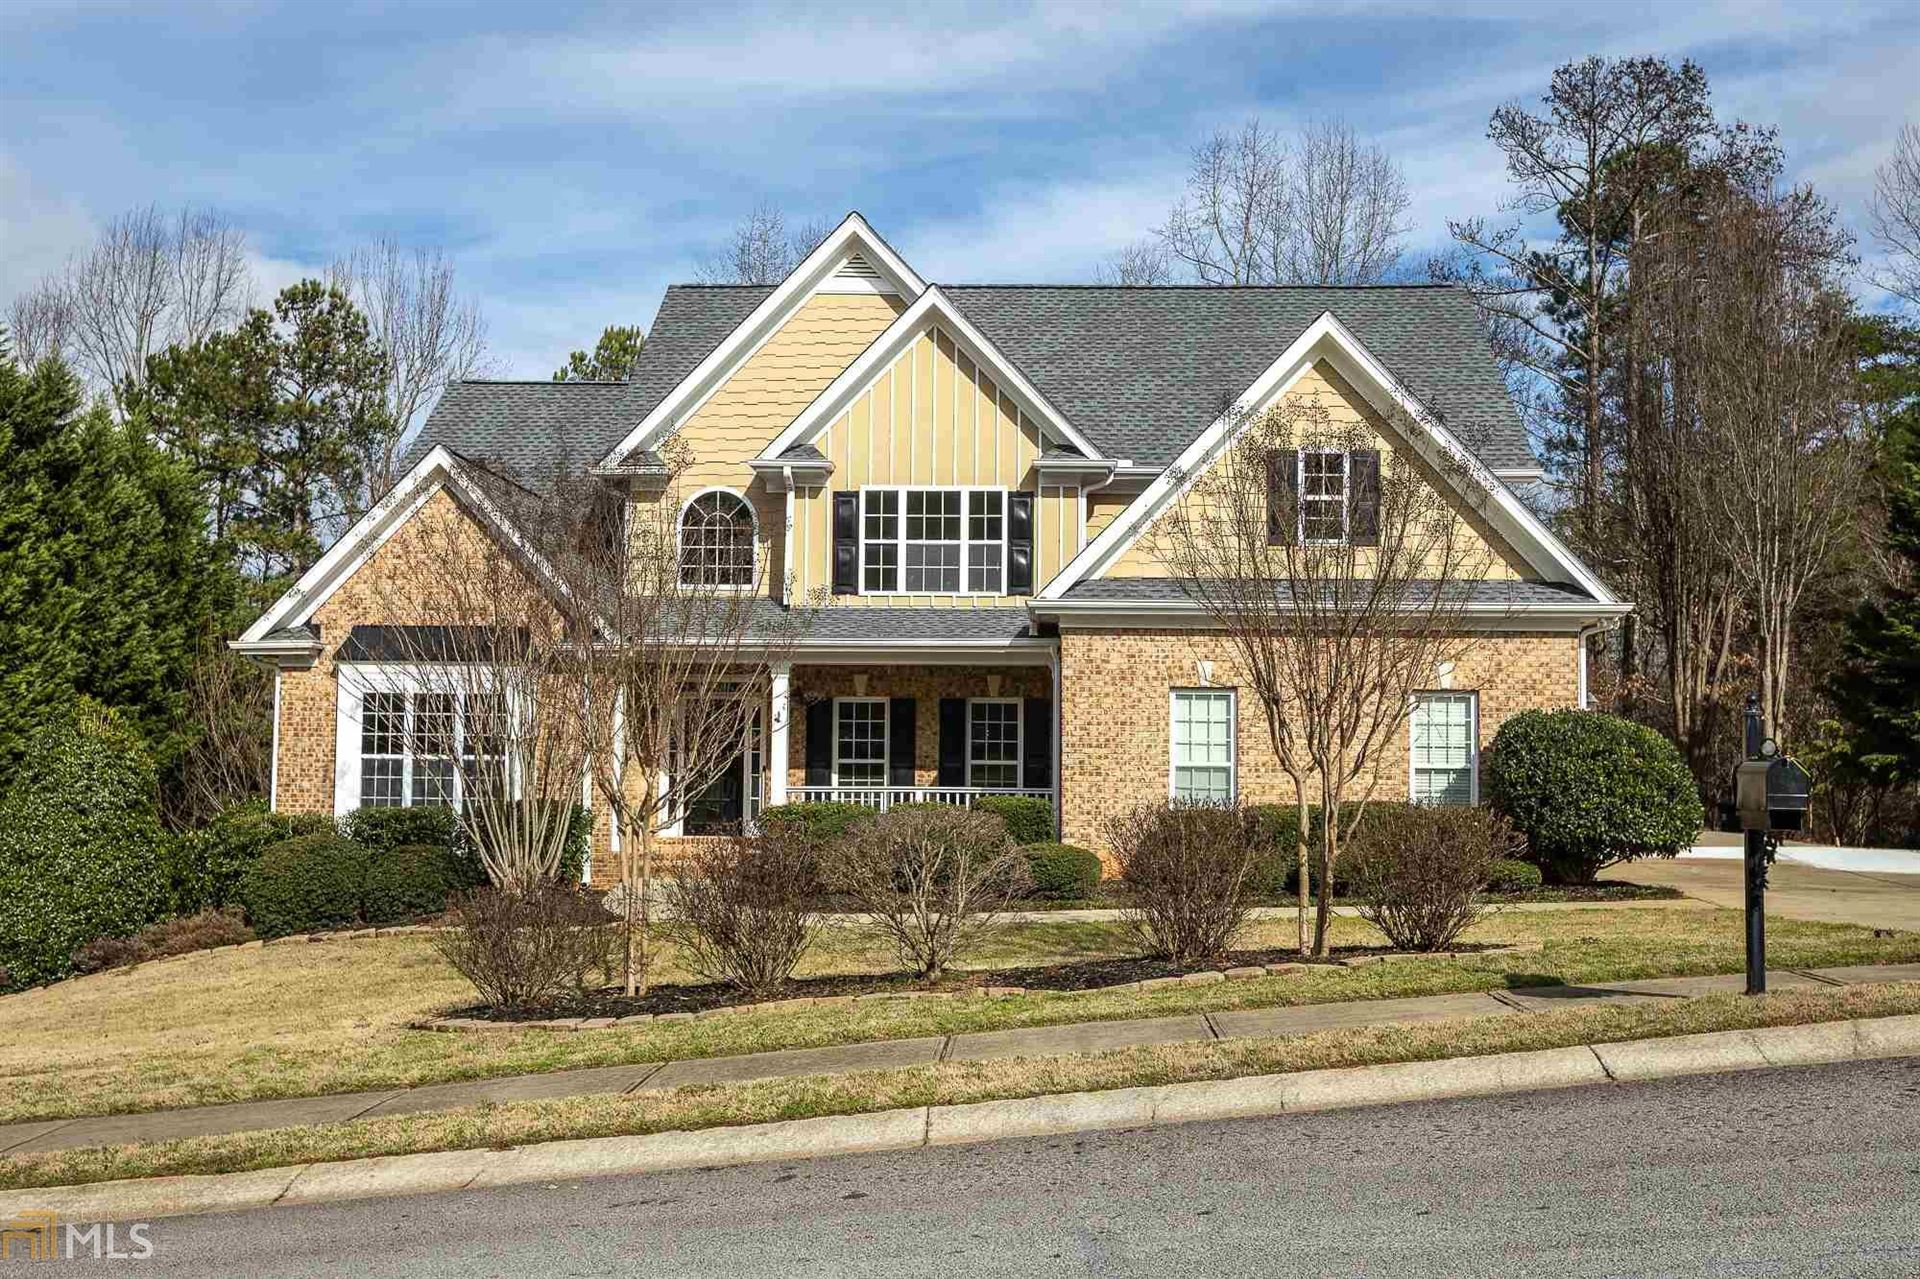 6311 Old Wood Holw, Buford, GA 30518 - MLS#: 8740557